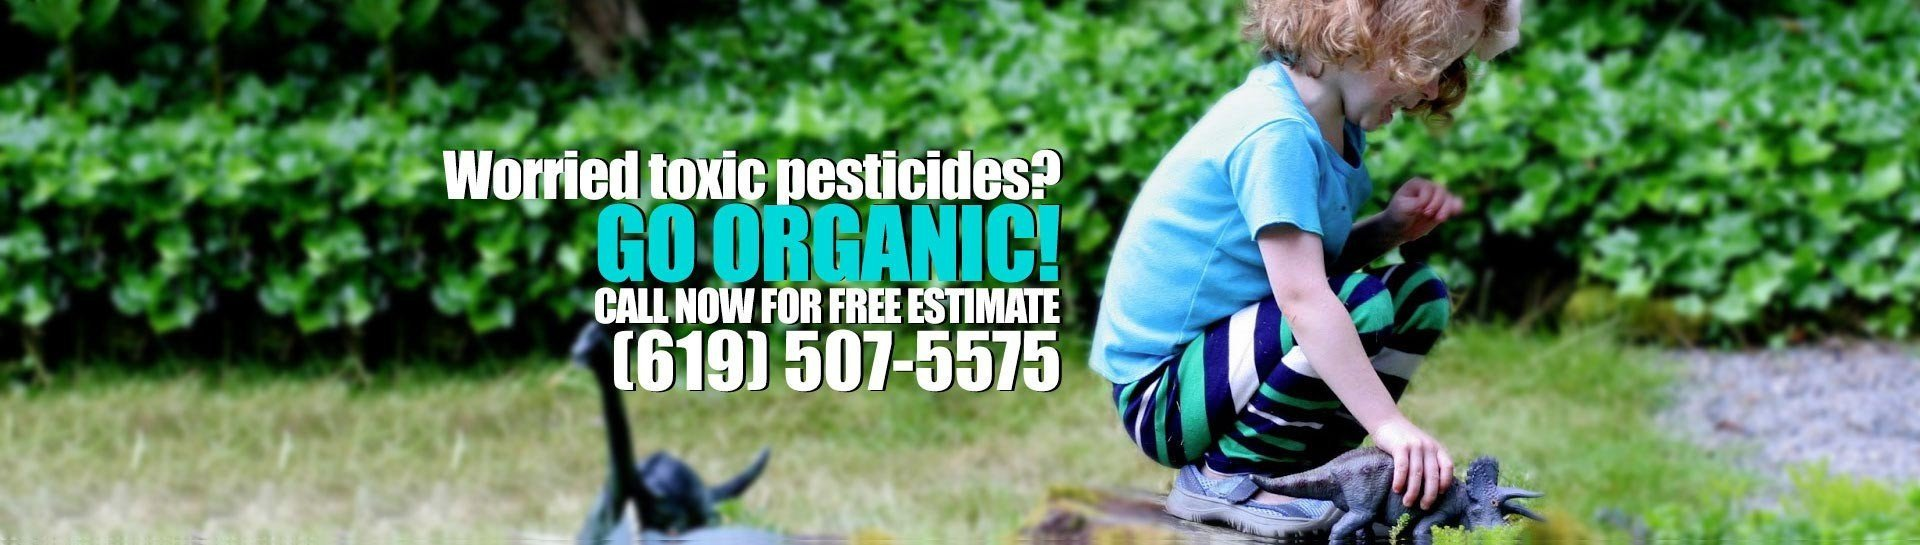 Worried Toxic Pesticides?